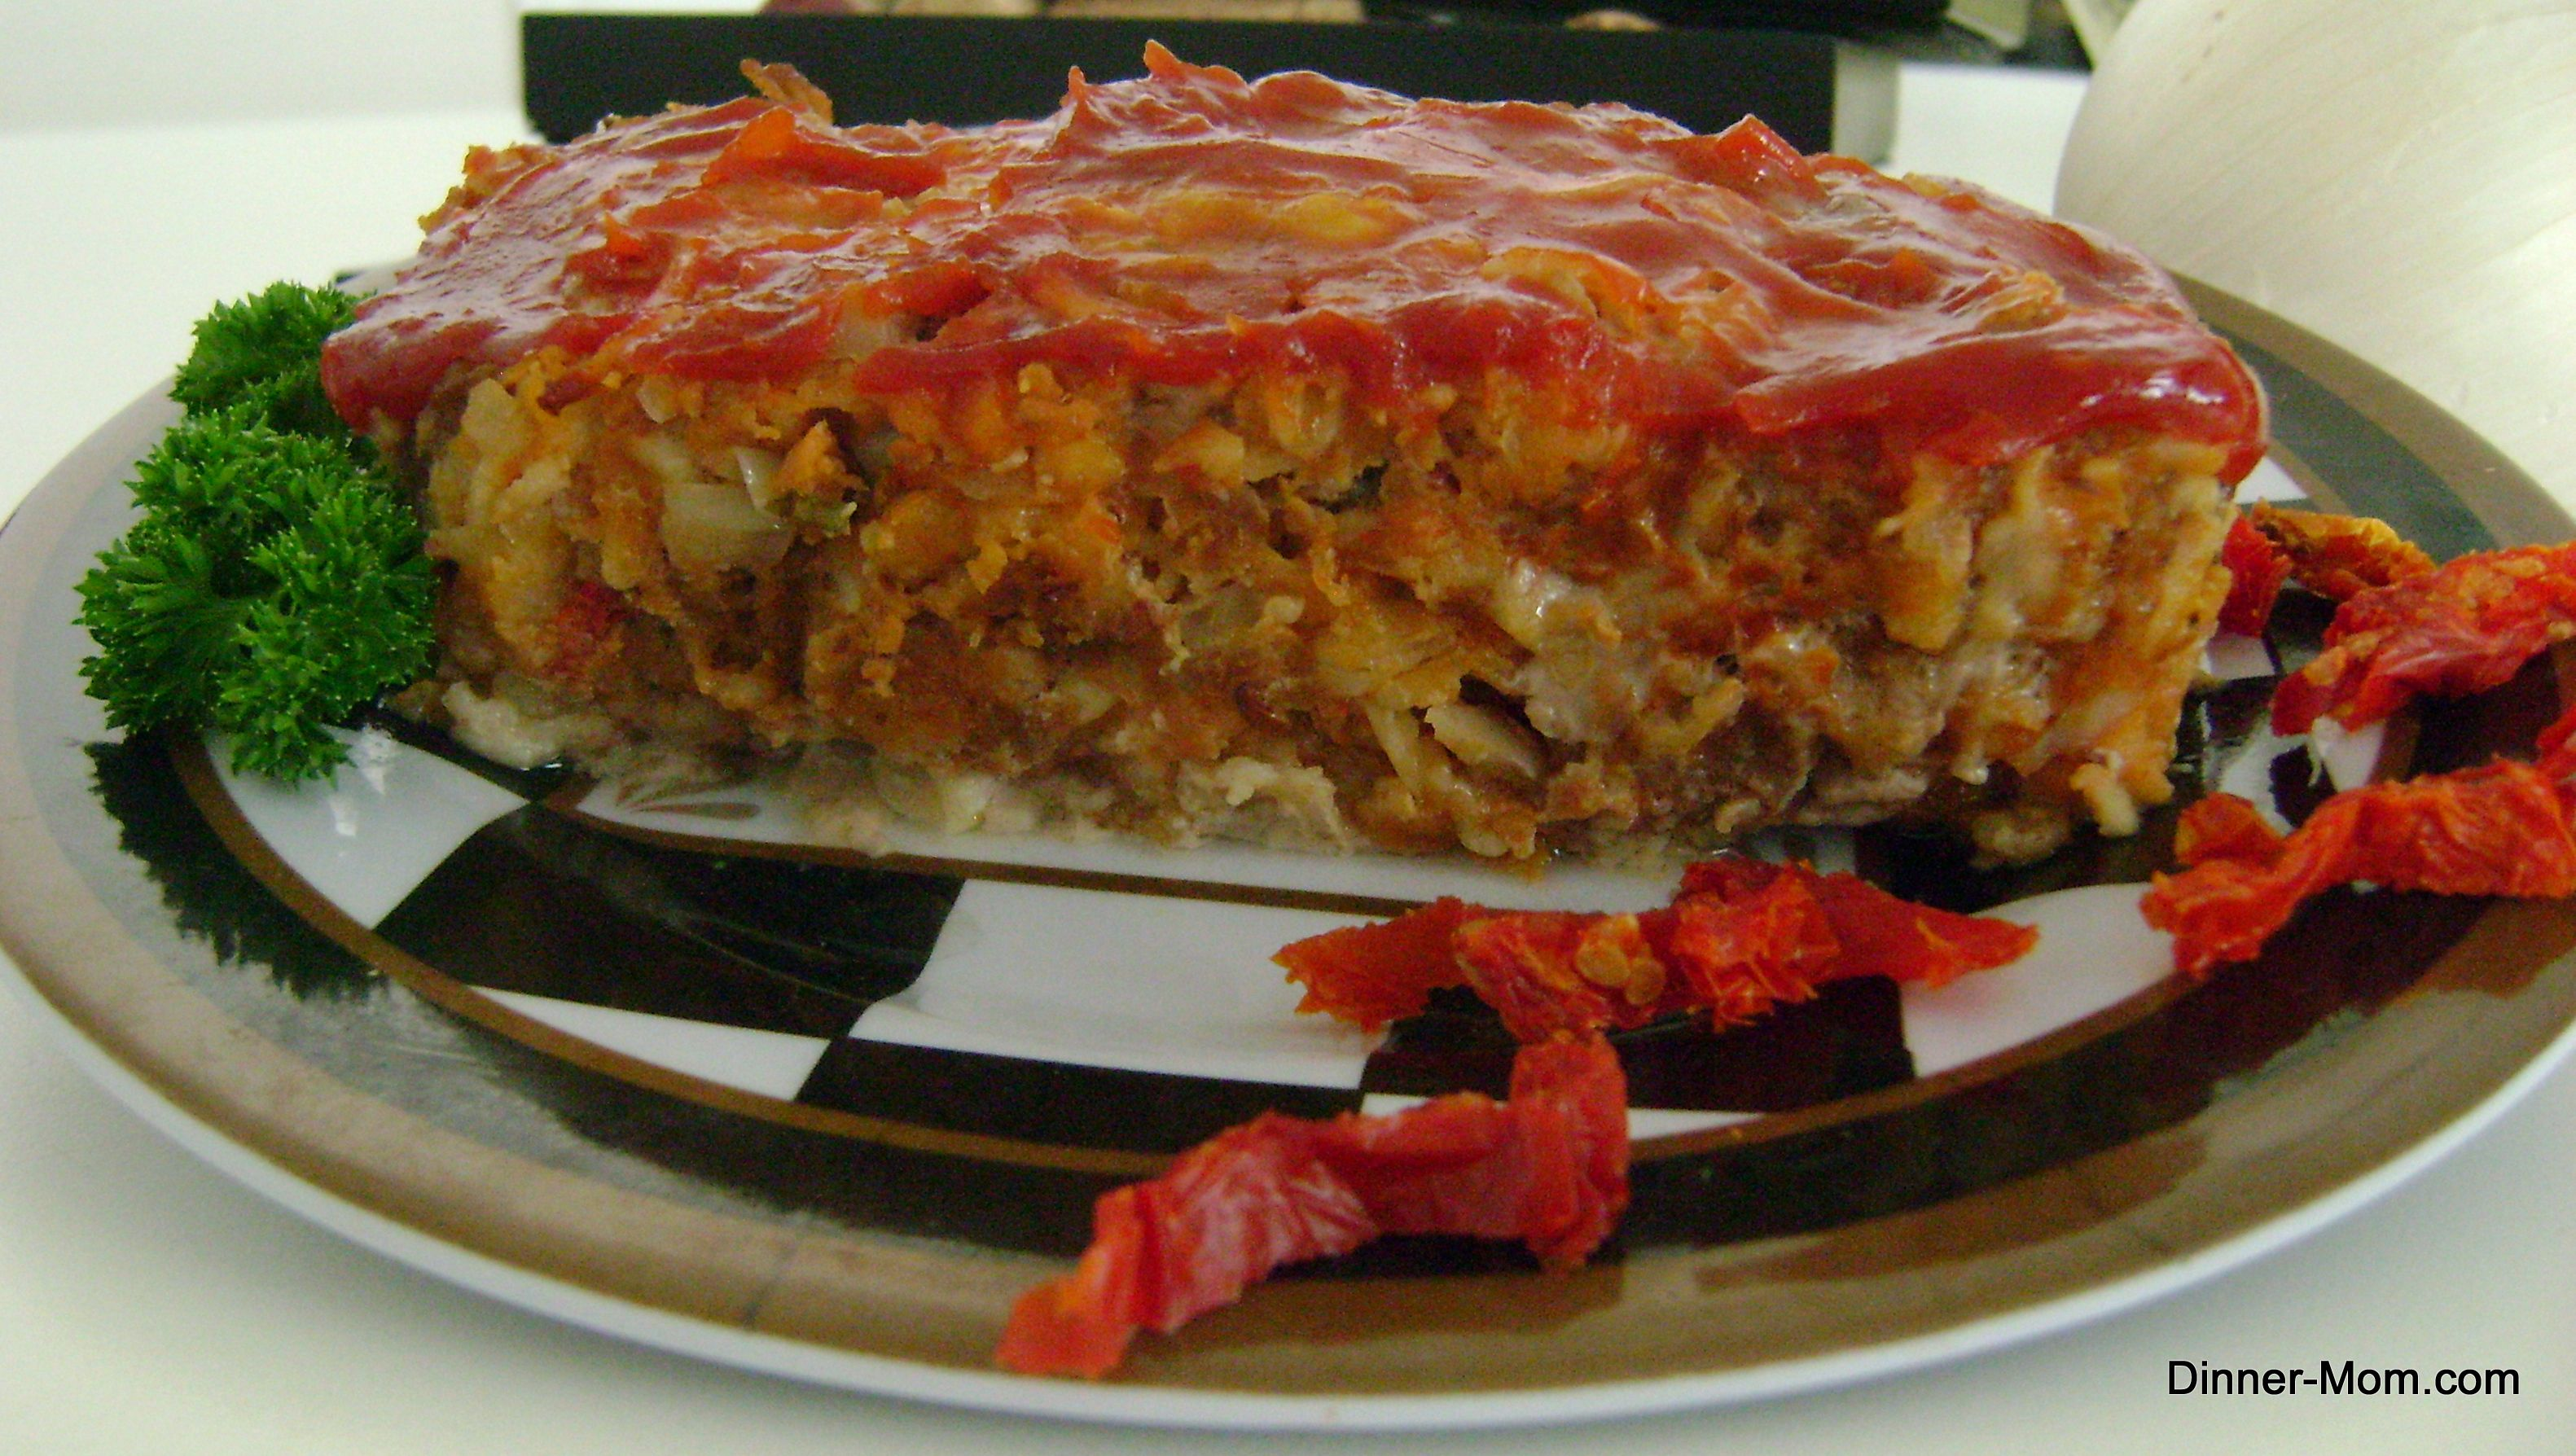 terrific better homes and gardens meatloaf. Gourmet meatloaf with sundried tomatoes  lots of cheese and fresh basil makeahead freeze